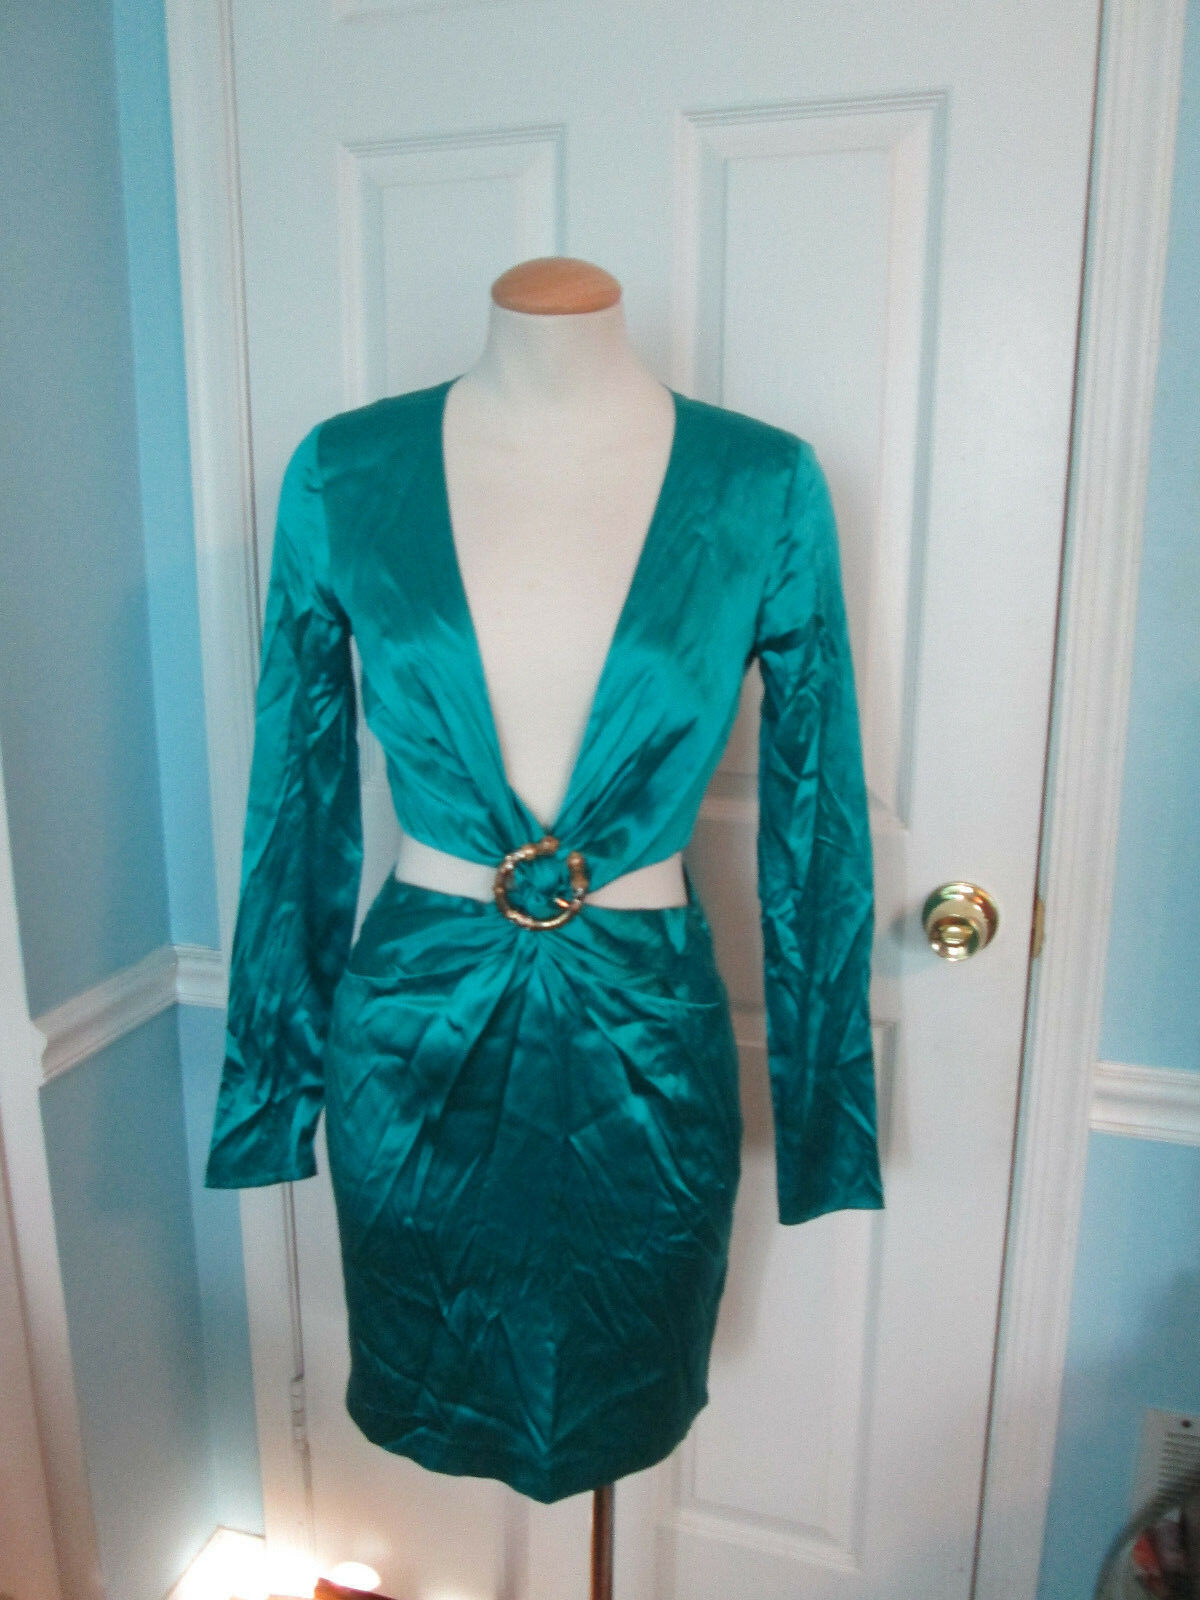 Guess marciano sexy dress cut out sides small very cute